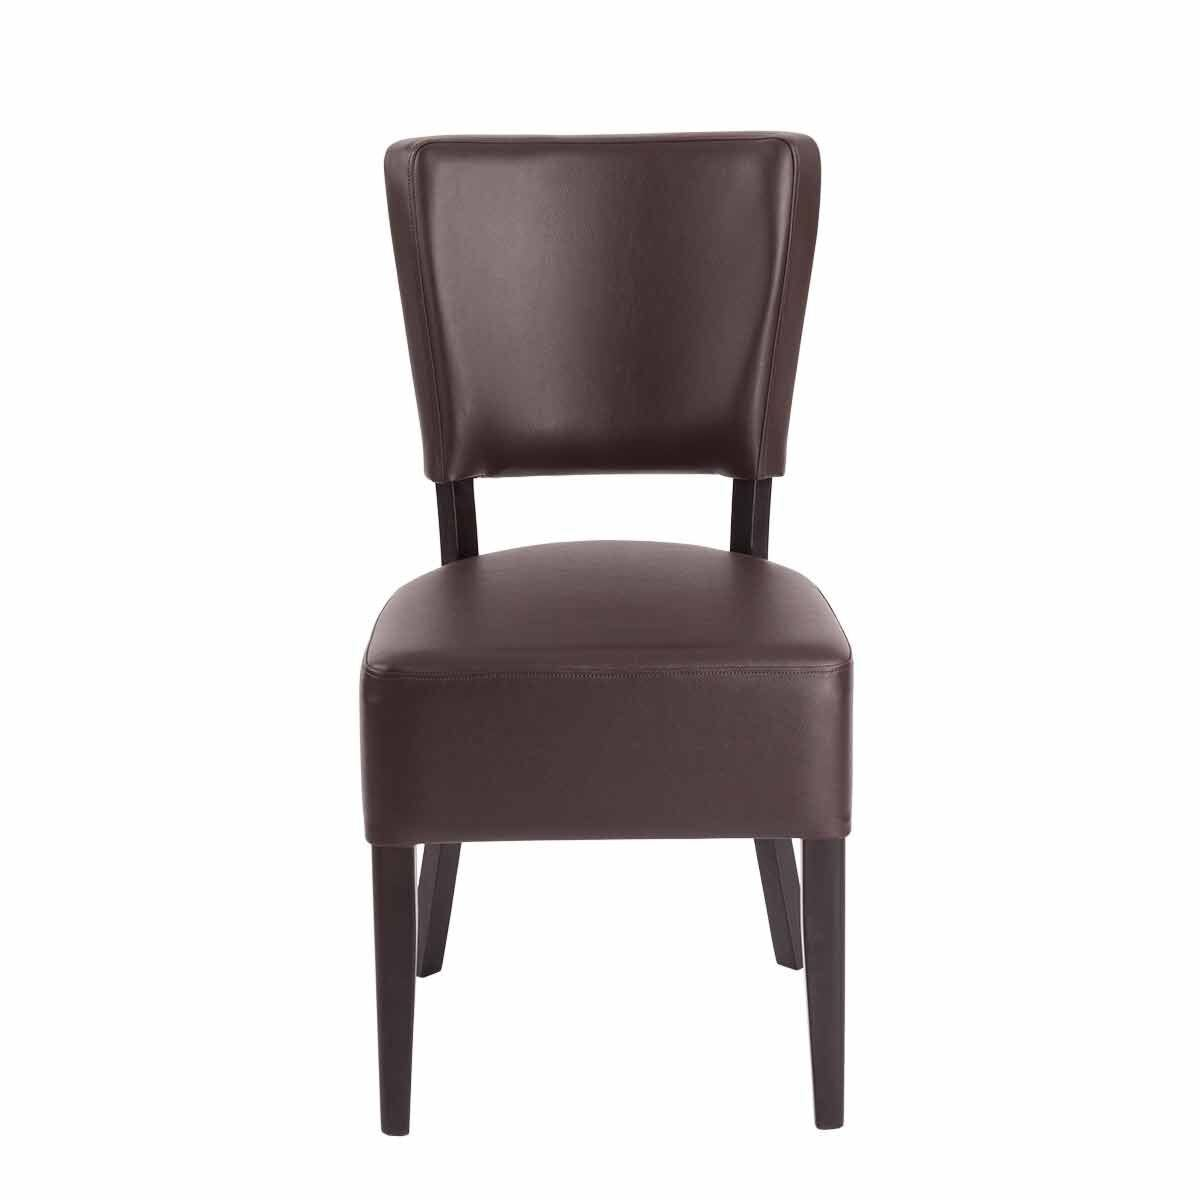 Tabilo Sena Faux Leather Dining Chair Brown